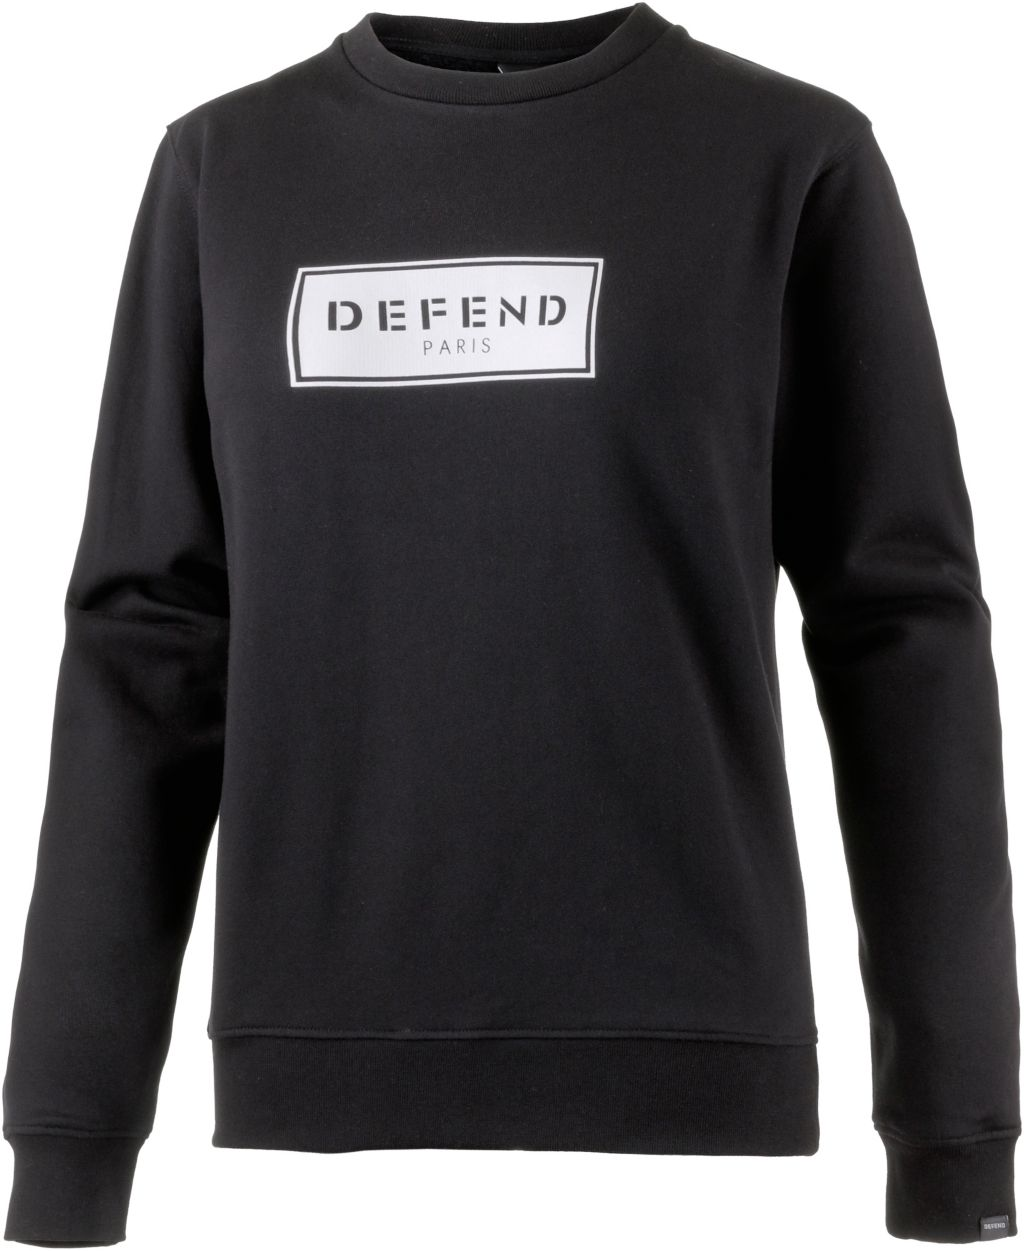 Defend Paris Sweatshirt Damen